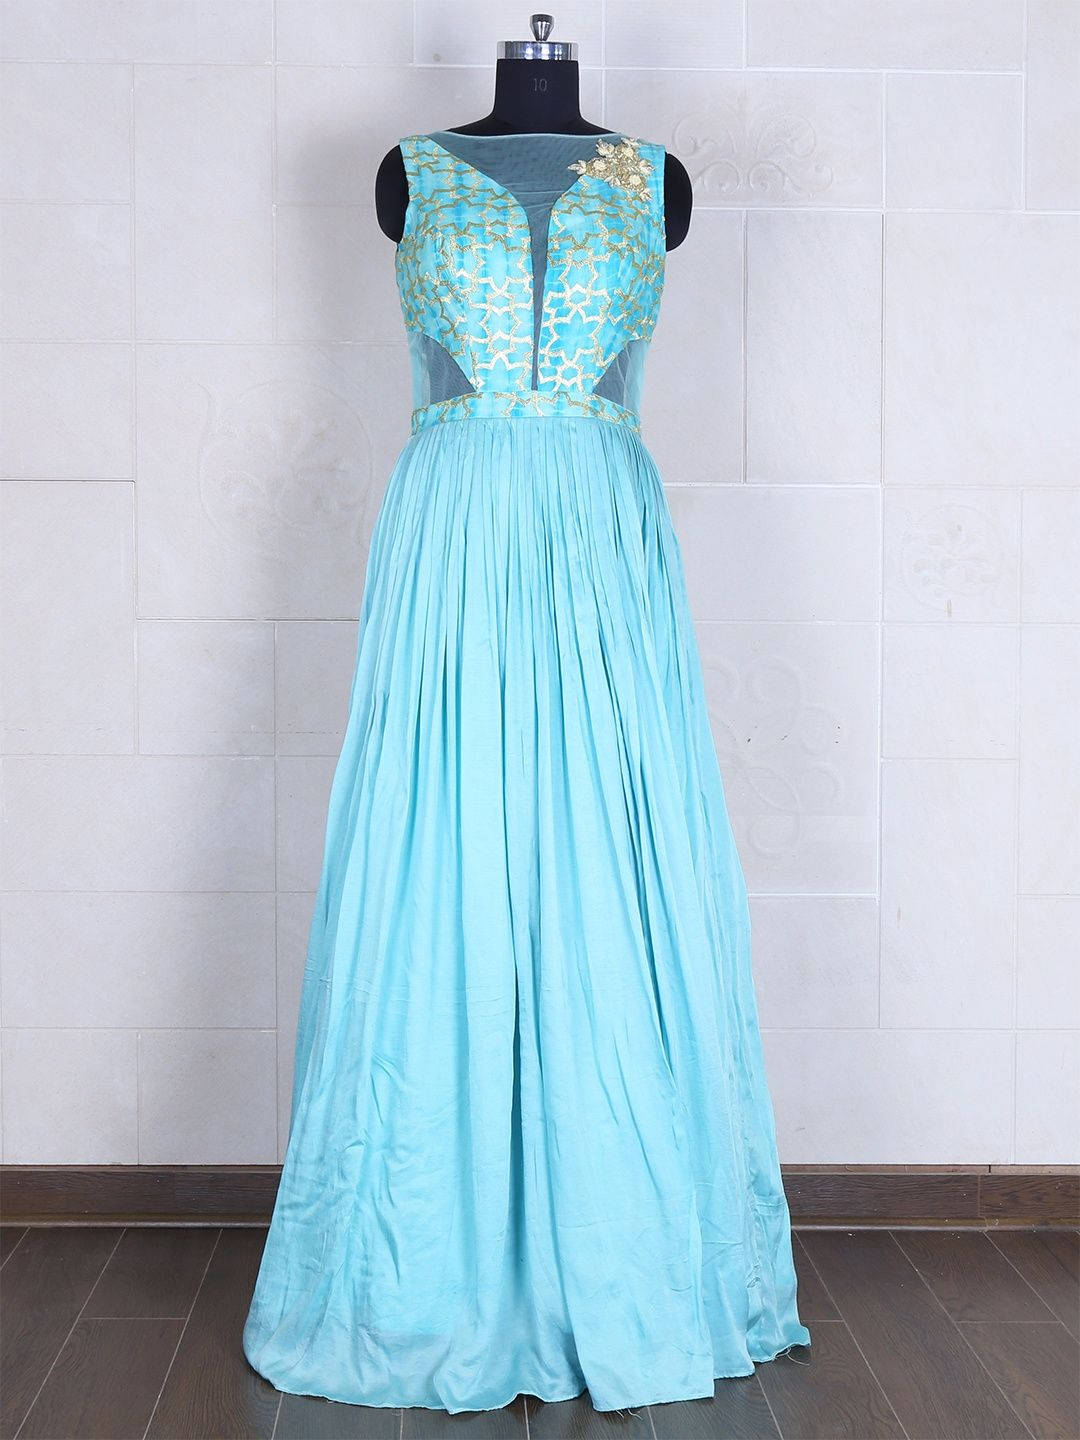 Silk See Green Gown | Buy Designer Gowns at G3 Fashion | Pinterest ...